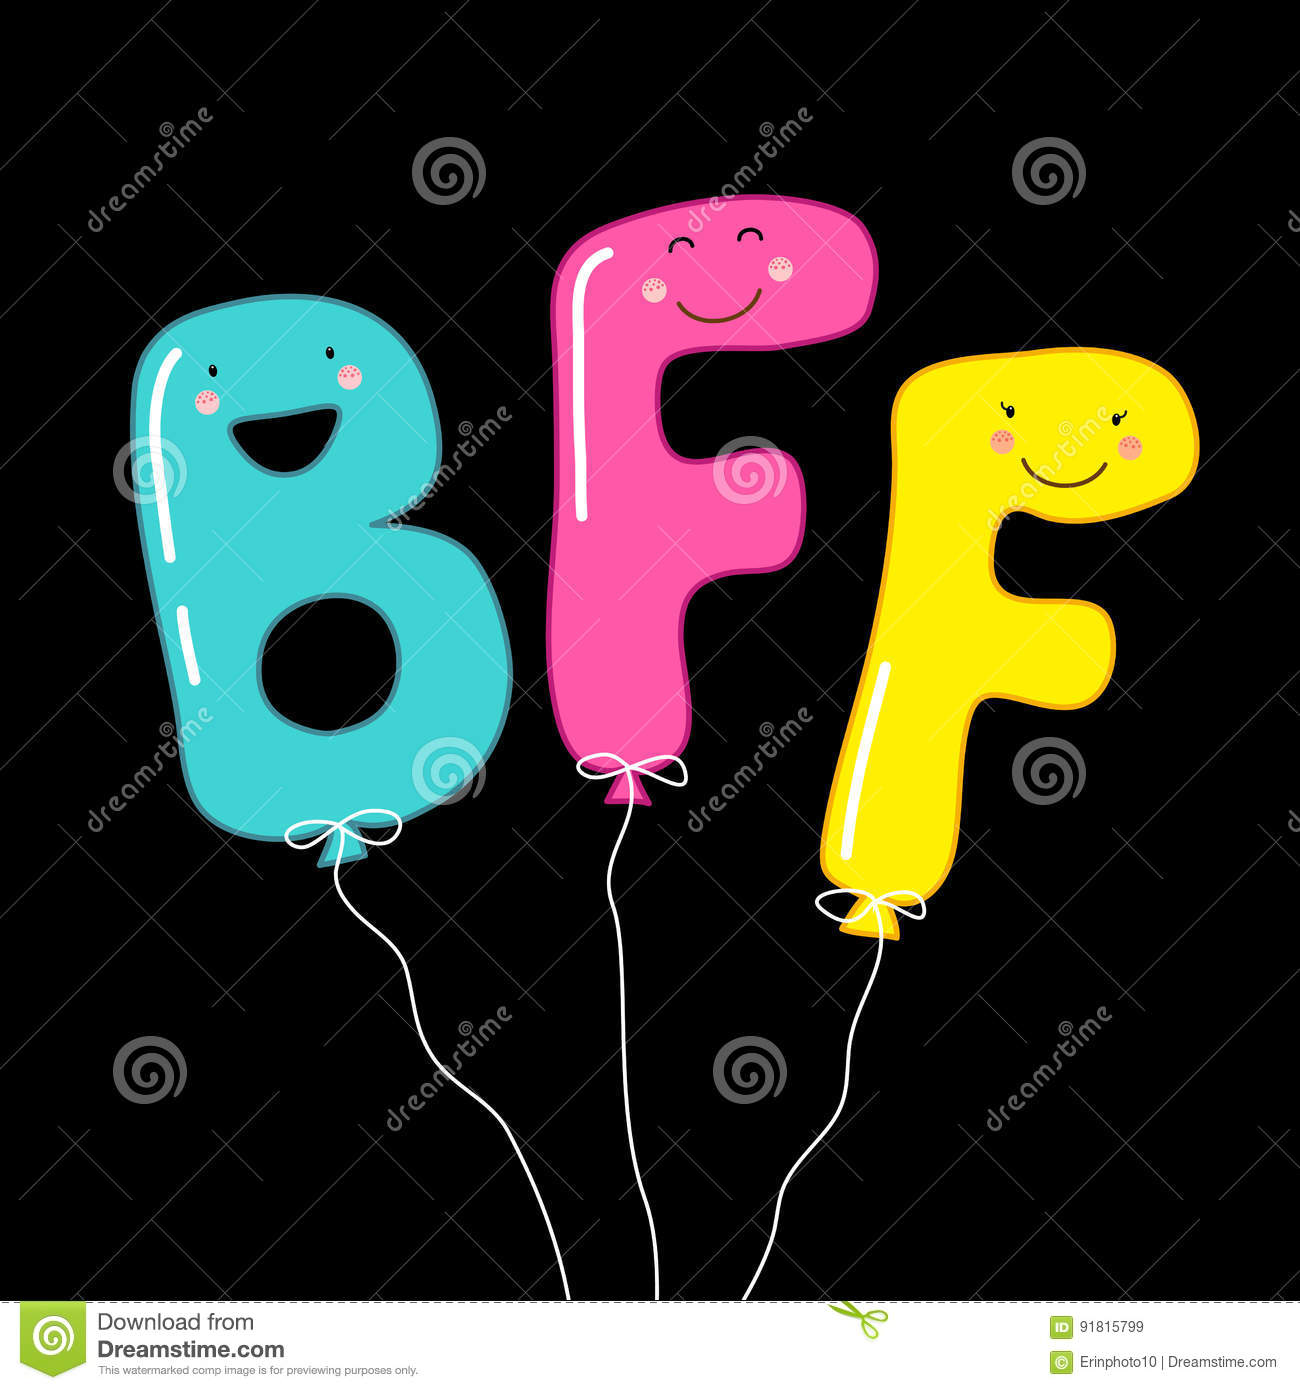 Cartoon Characters 7 Letters : Cute smiling cartoon characters of letters bff best